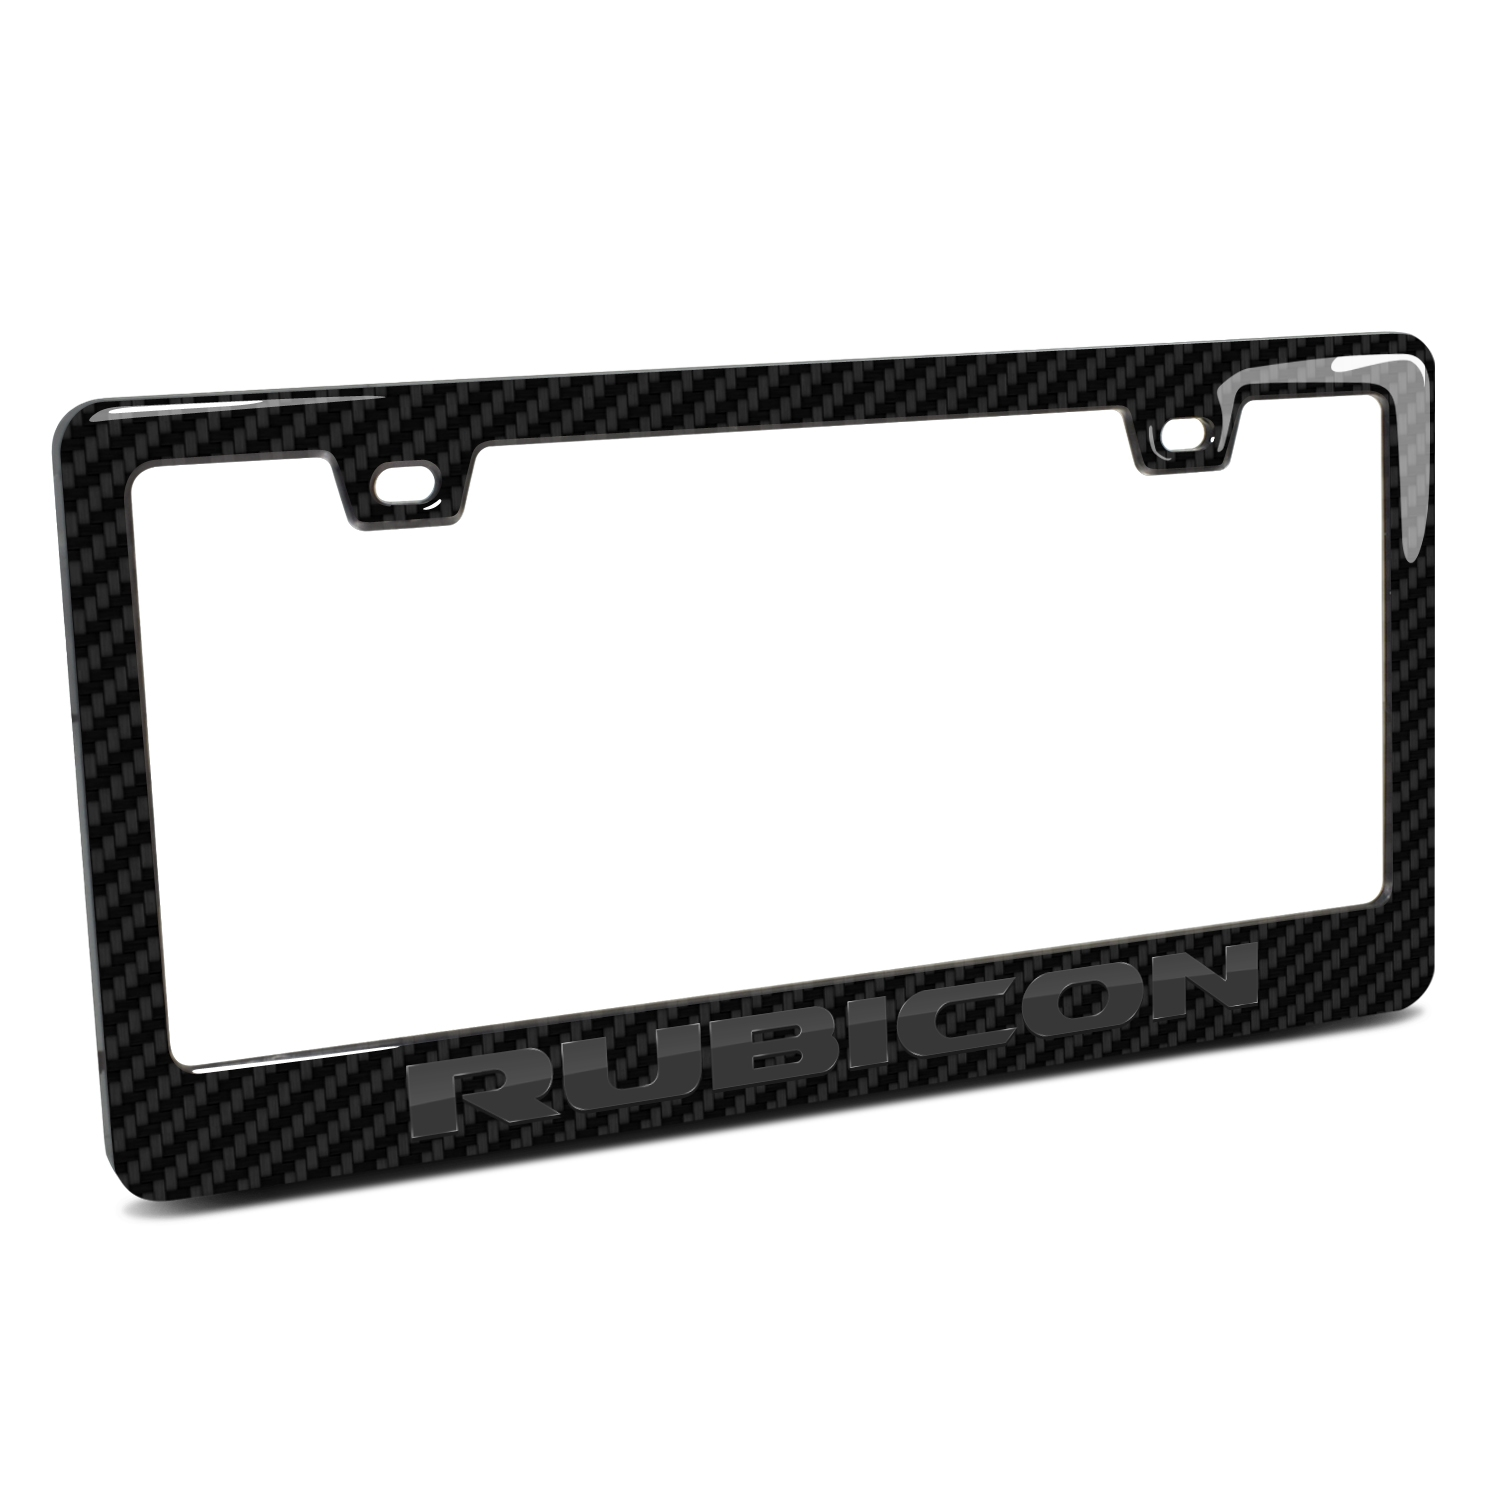 Jeep Rubicon Wrangler in 3D Black on Black Real 3K Carbon Fiber Finish ABS Plastic License Plate Frame